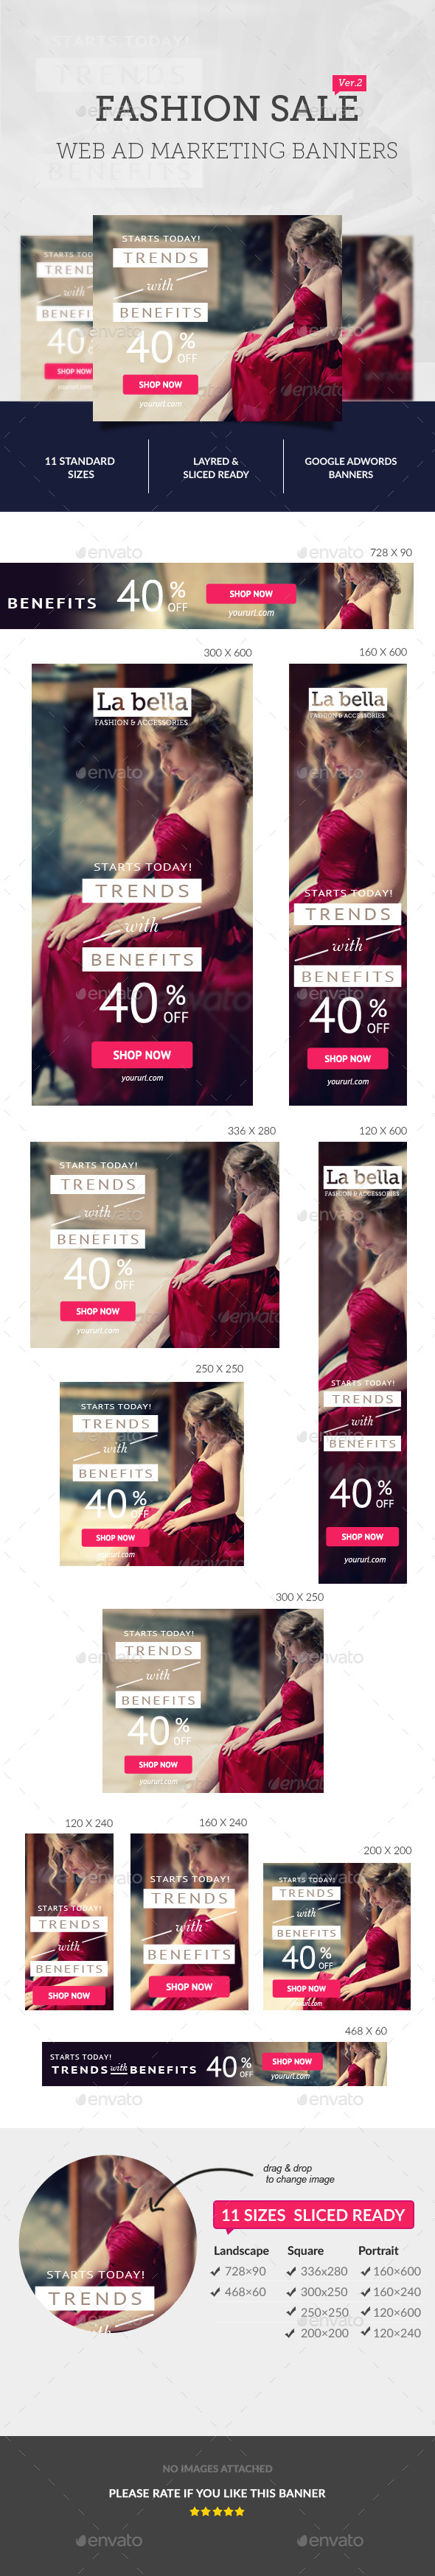 GraphicRiver Fashion Sale Ad Banners 10671351